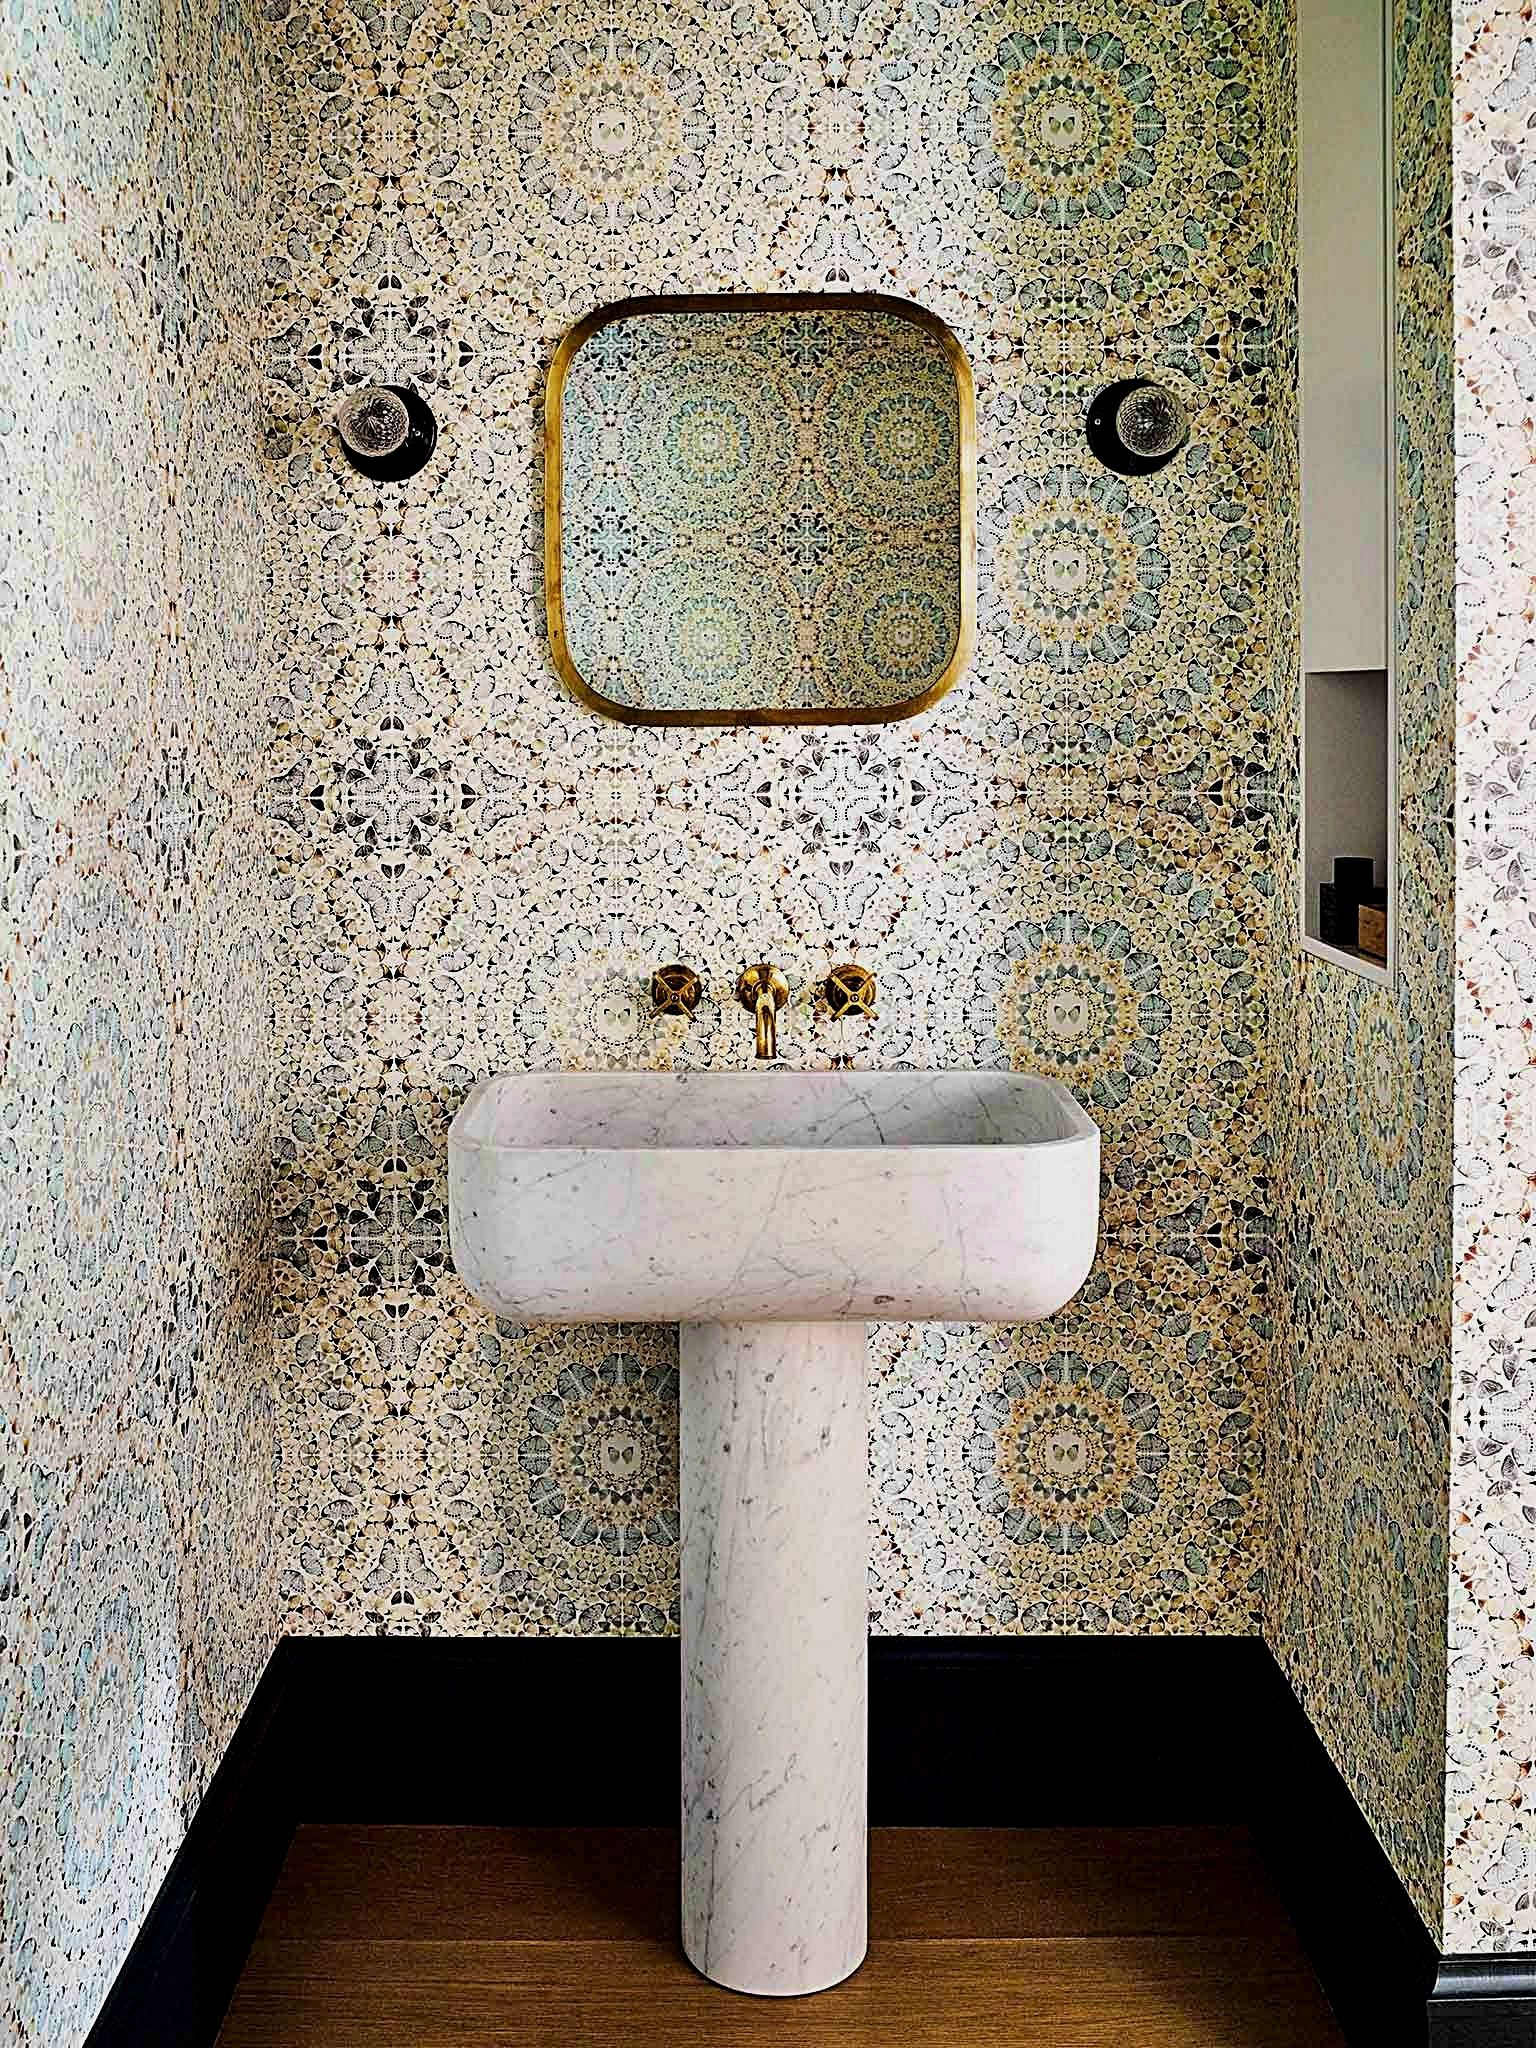 Bathroom Decor Guide The Mirror Will Reflect Light From The Window That Will Create An Effect Like Two Windows Pedestal Sink Pedestal Sinks Diy Bathroom Decor